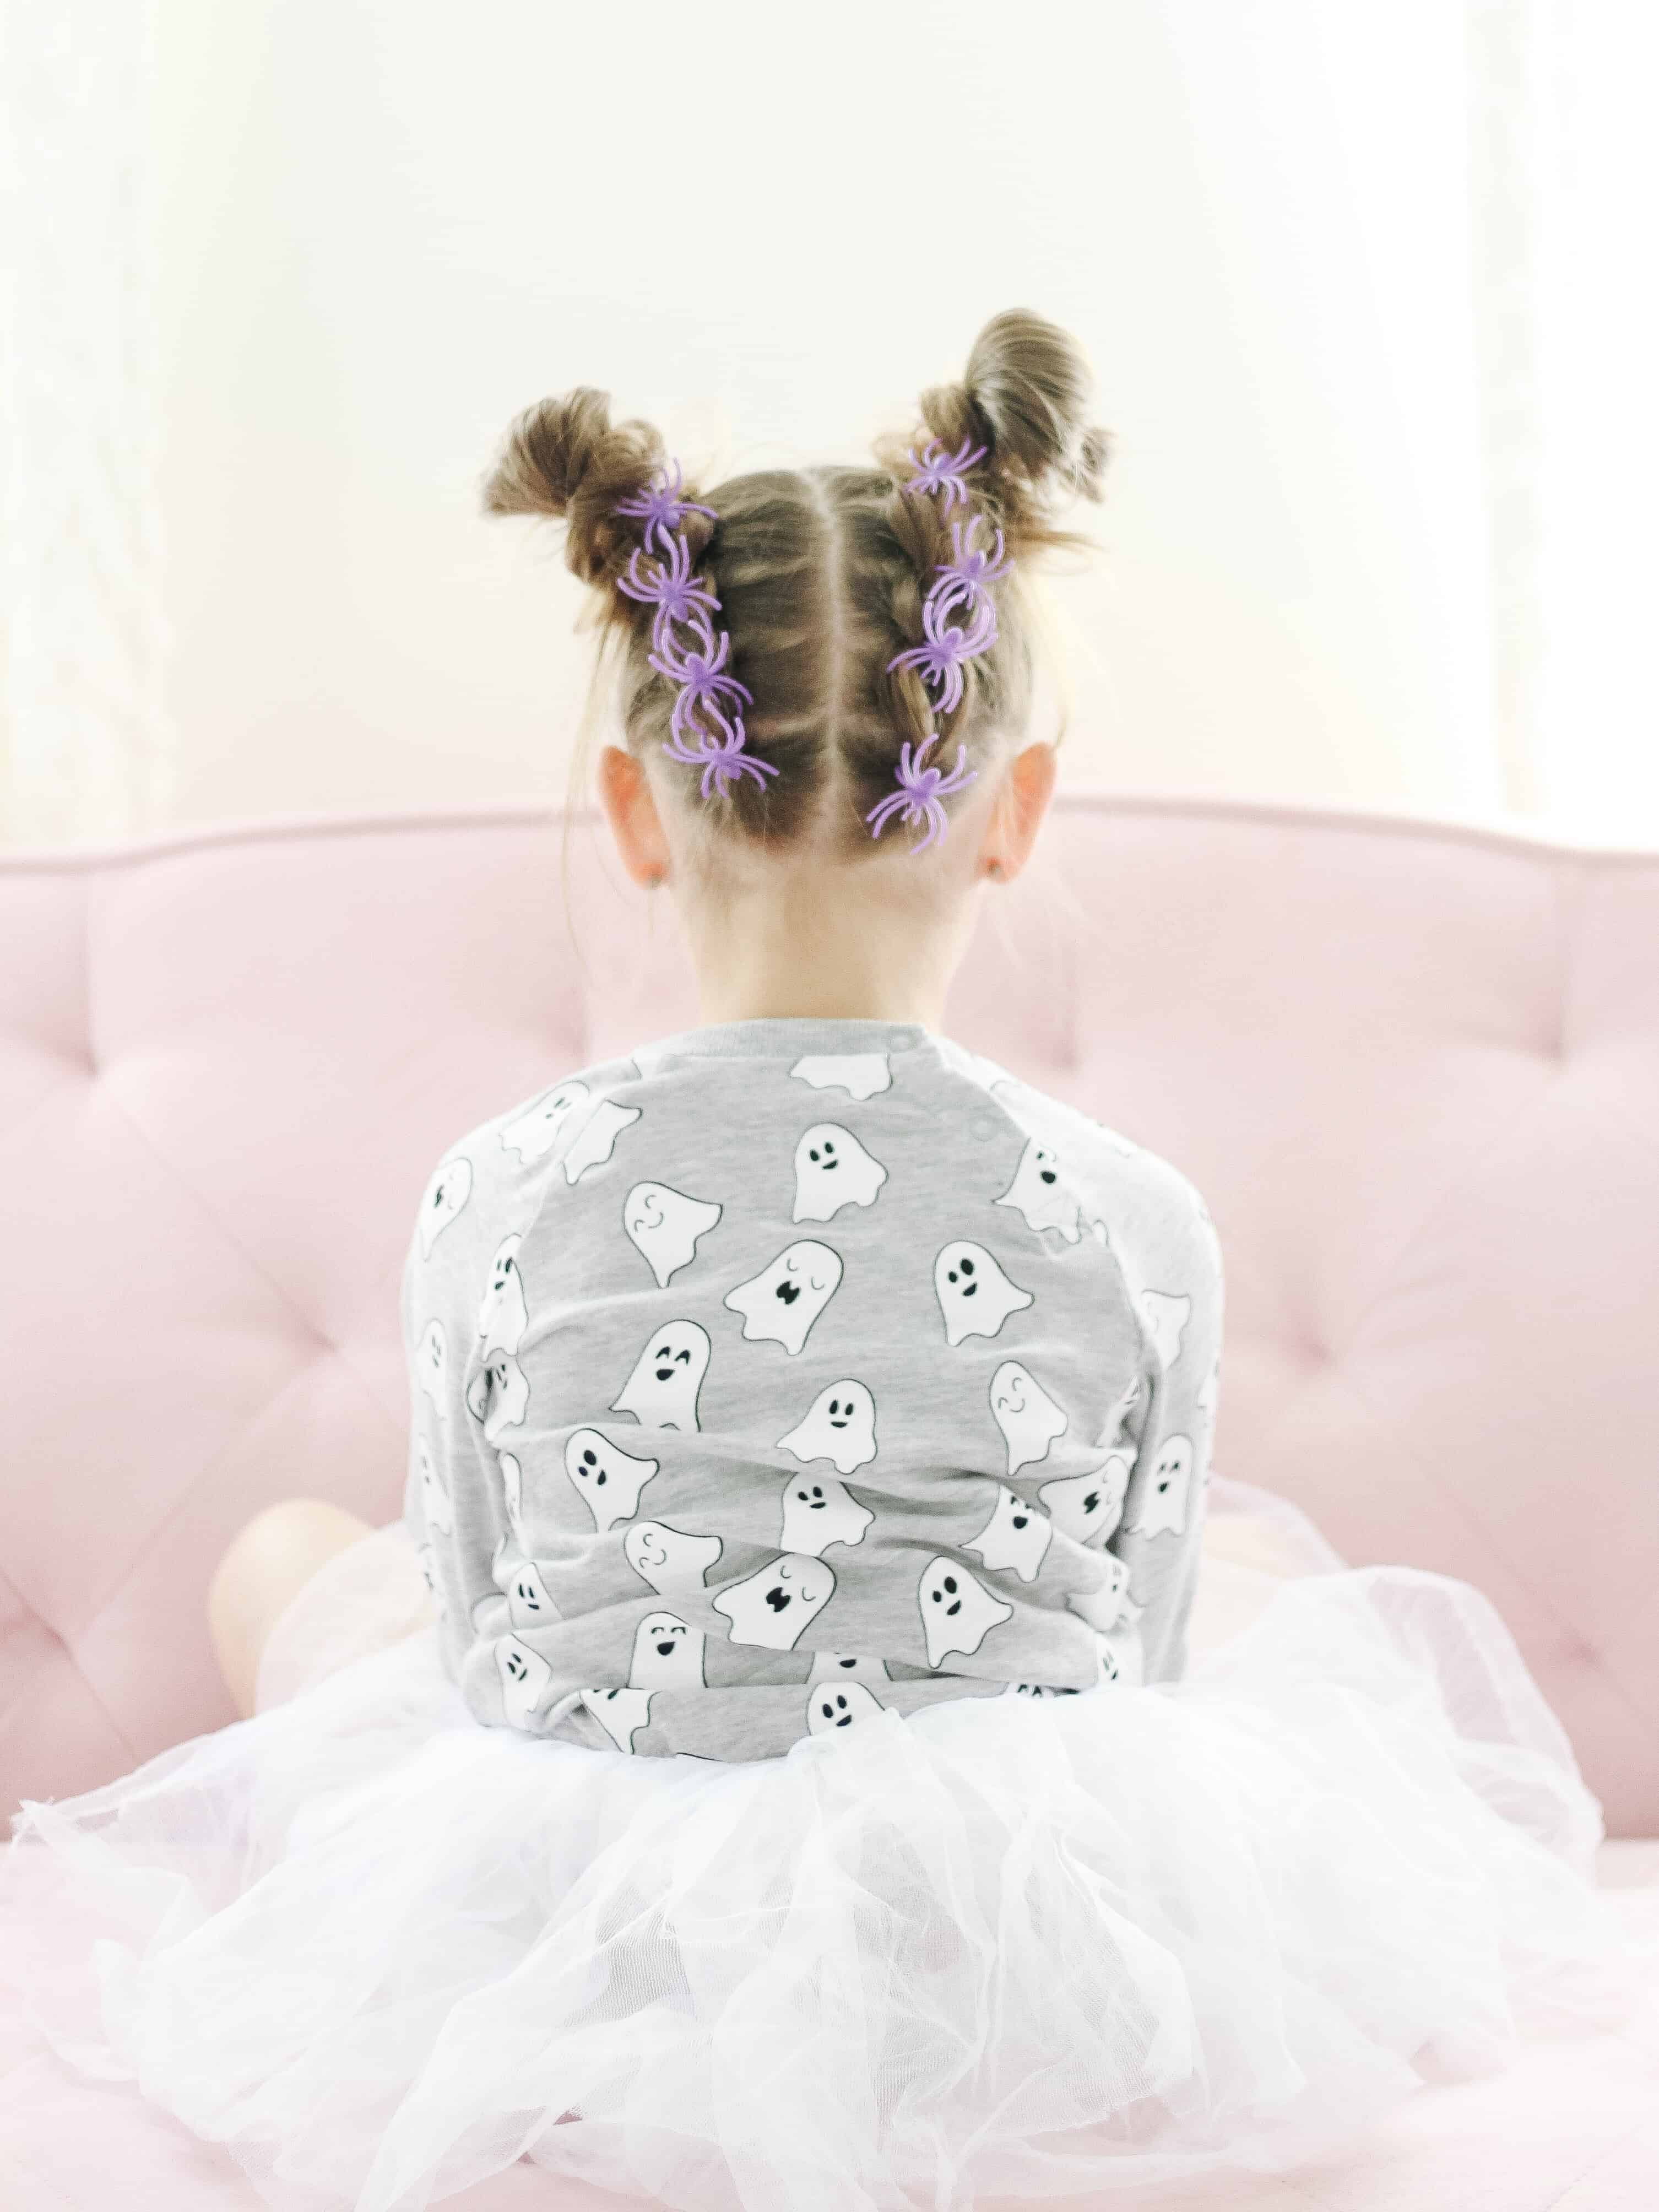 Toddler with spider rings in her hair for halloween hair